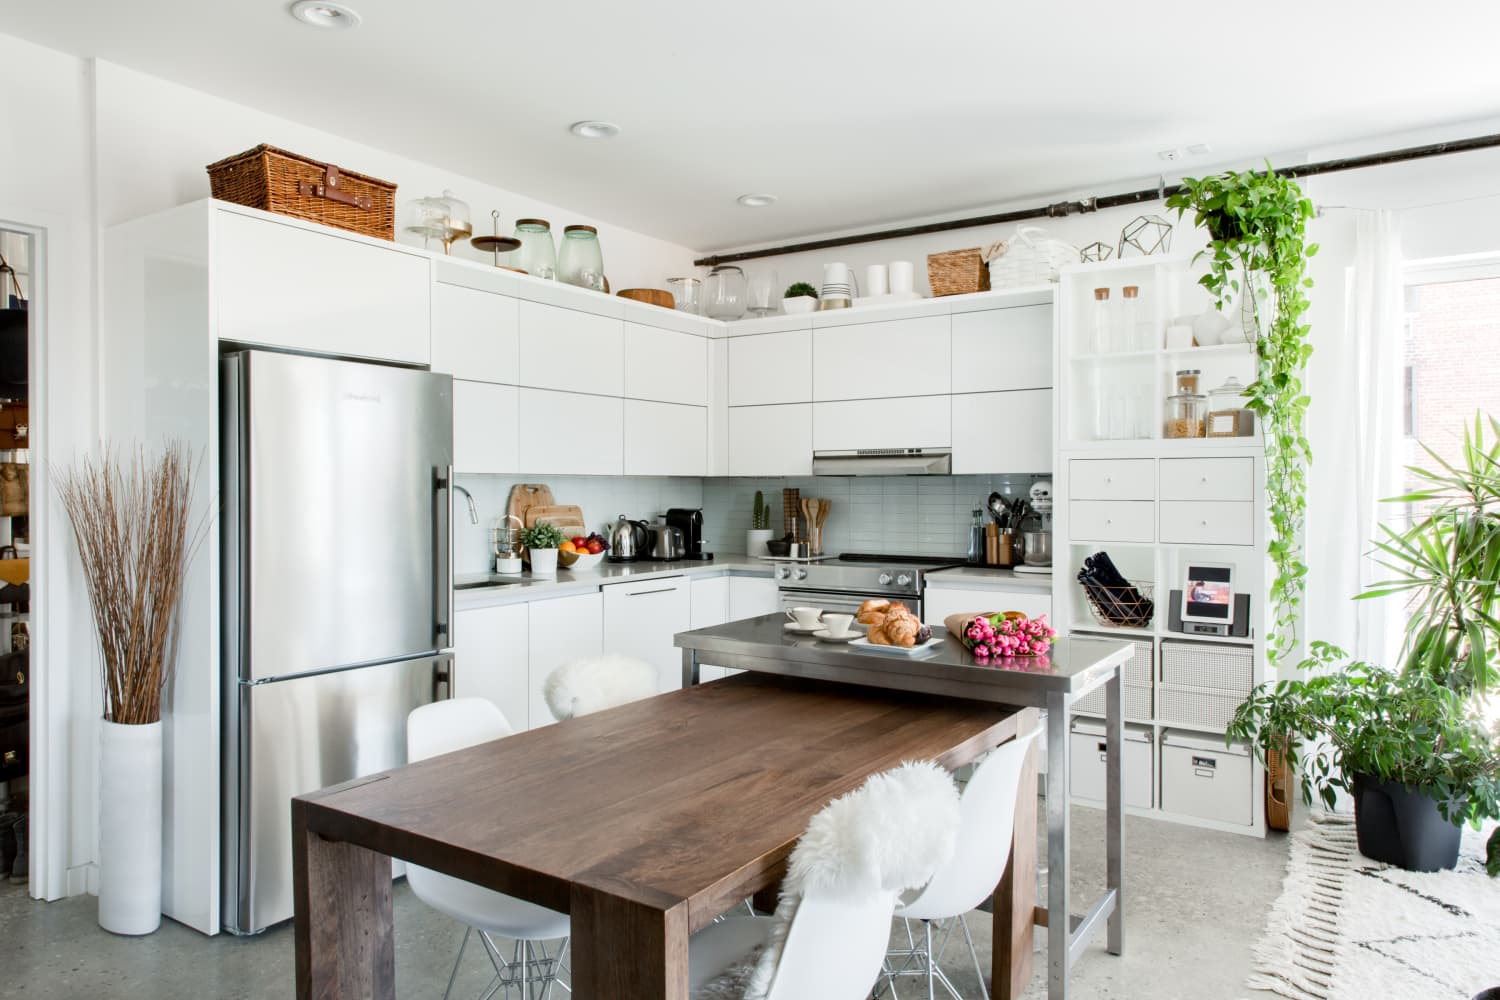 5 Ways to Take Advantage of the Most Obvious Wasted Space in Your Kitchen